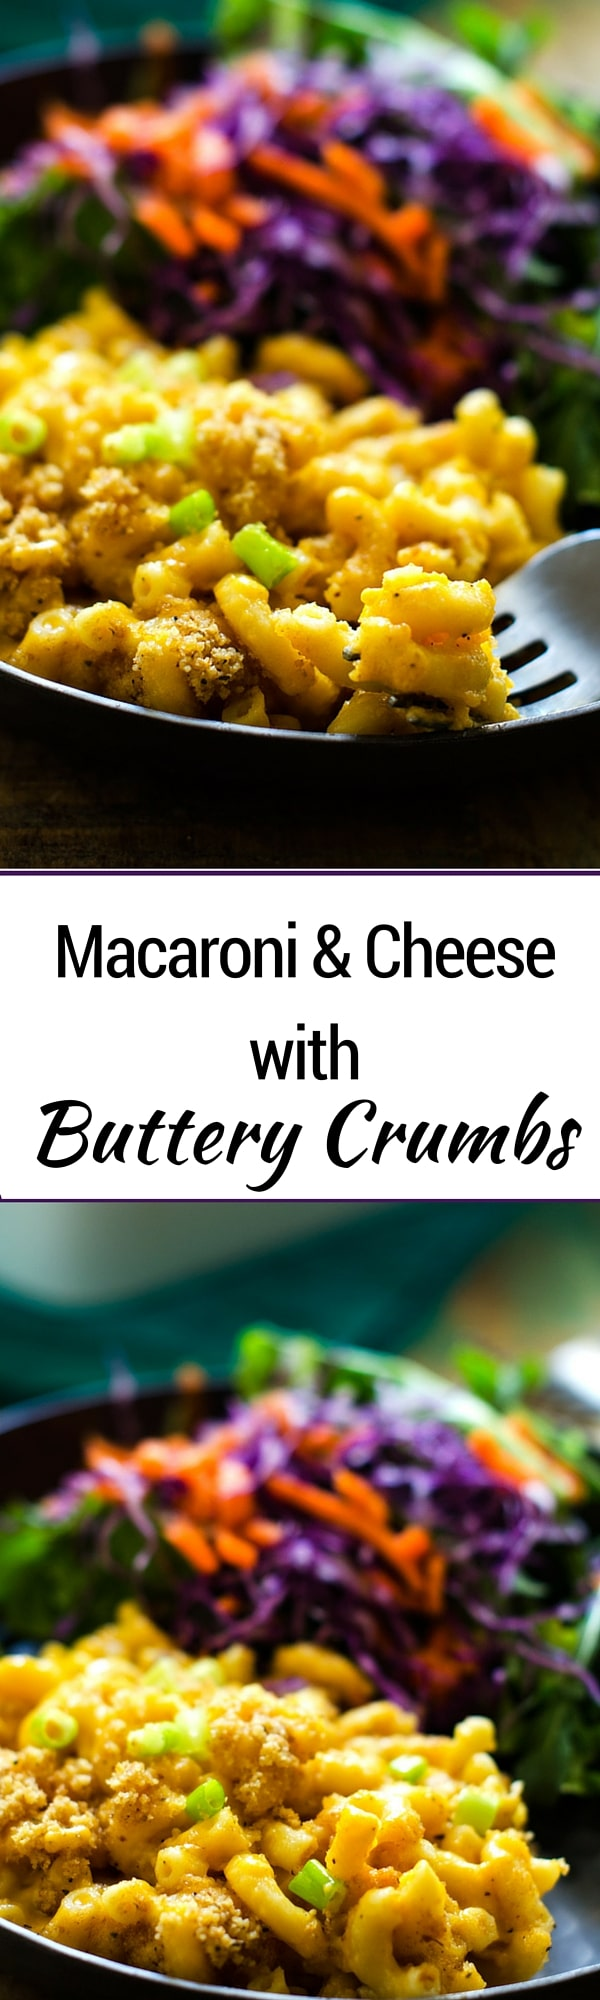 Macaroni & Cheese with Buttery Crumbs